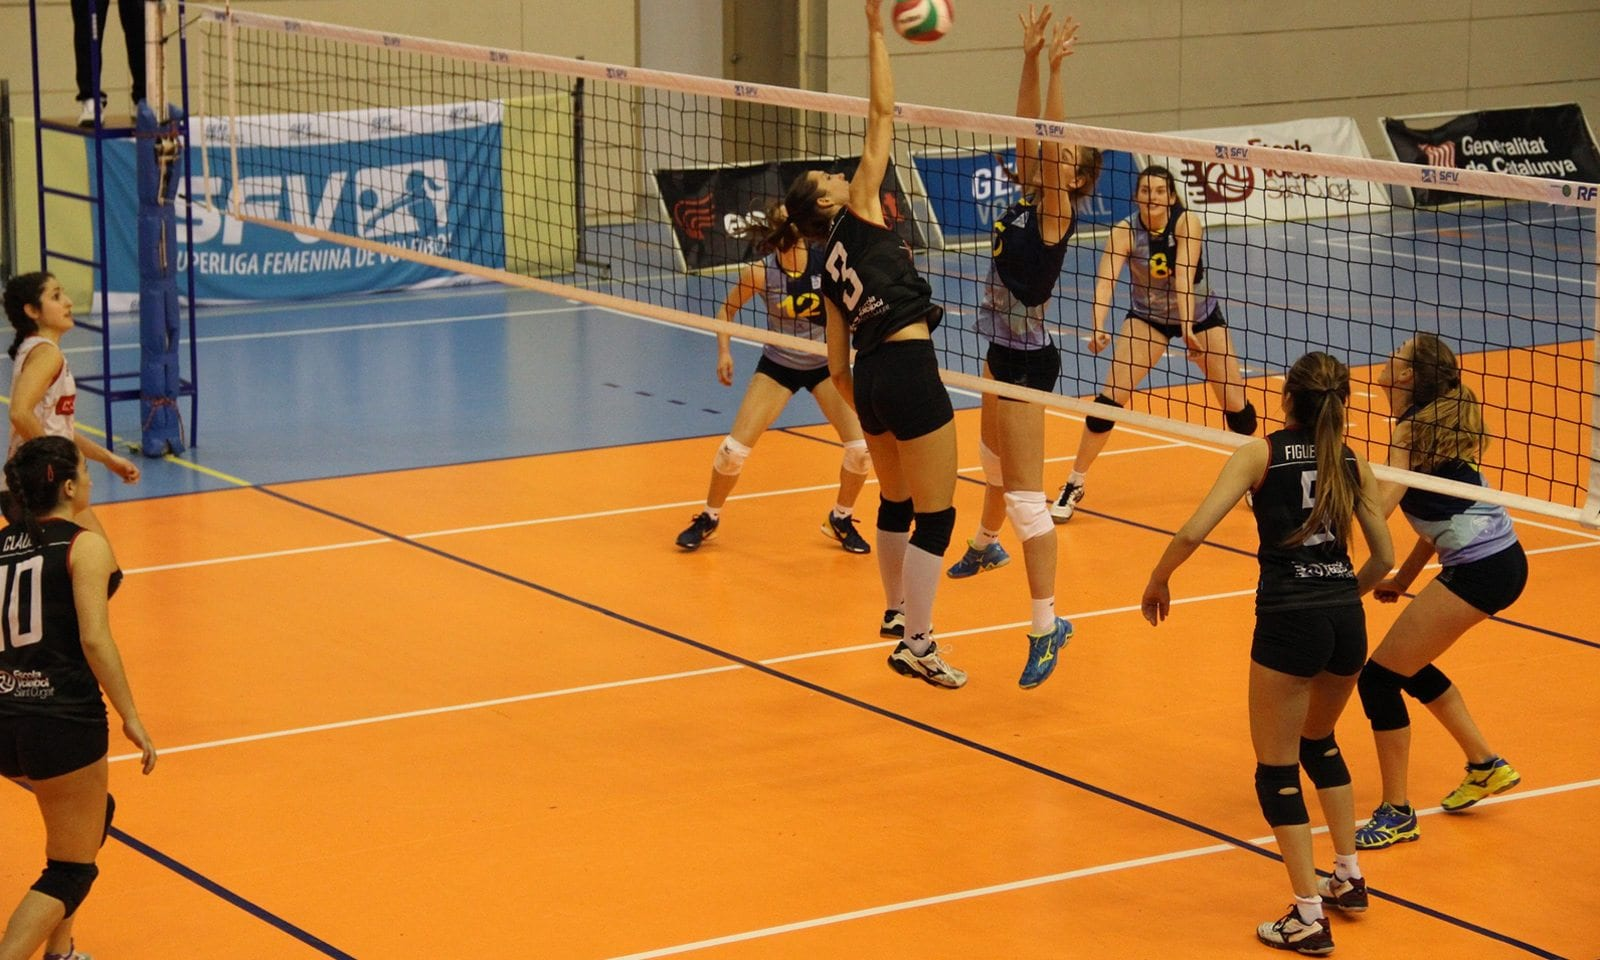 playing-volleyball-image